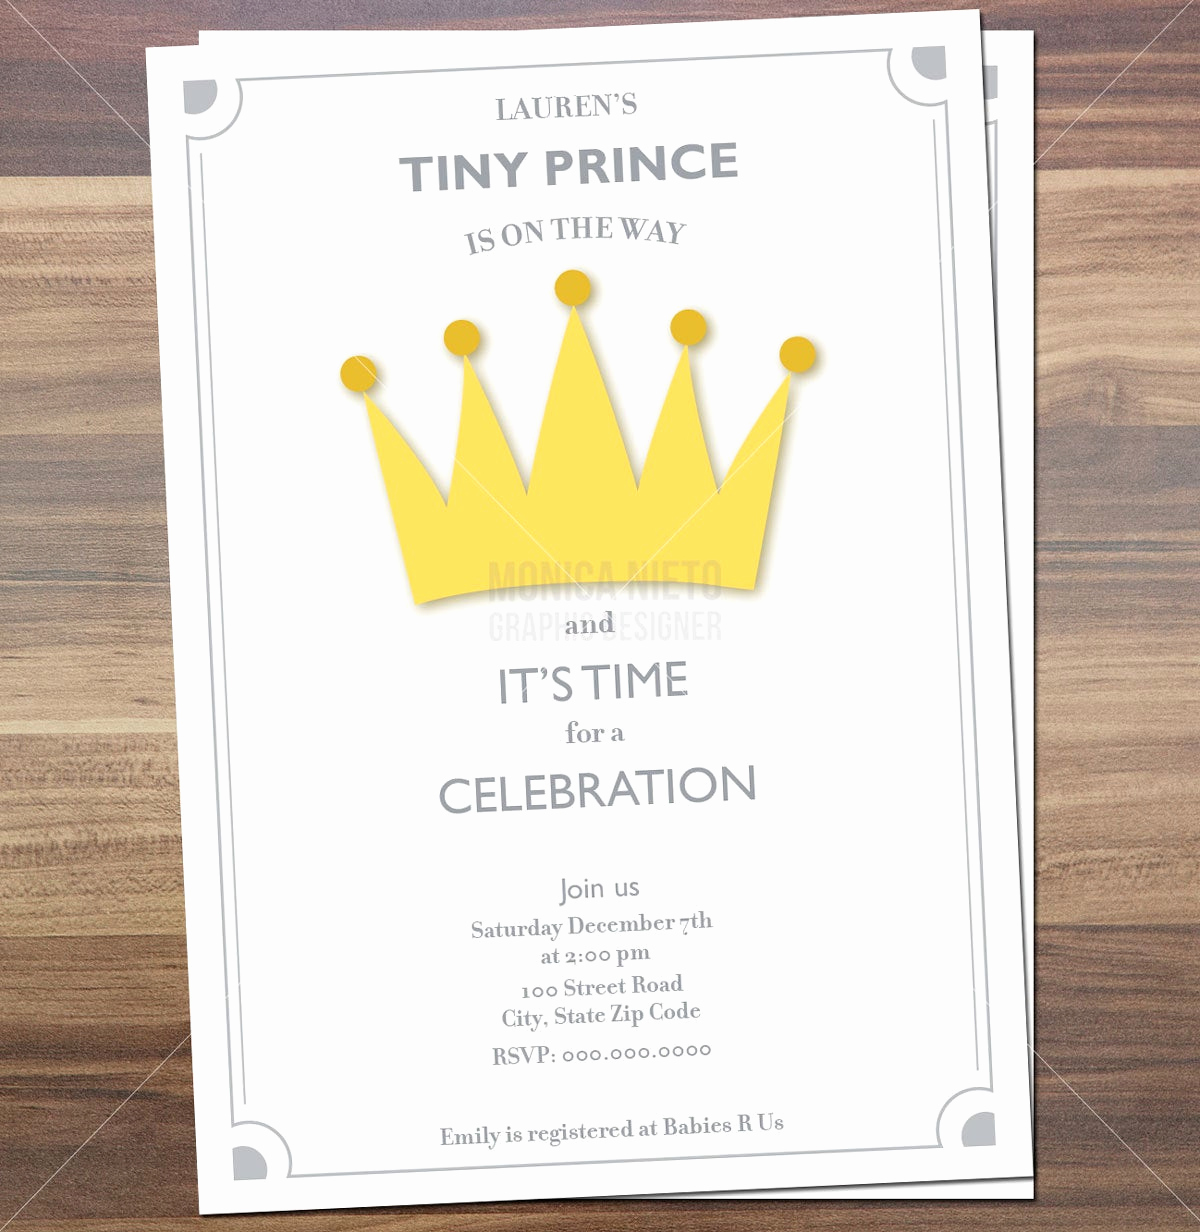 Royal Baby Shower Invitation Luxury Printable Royal Prince Baby Shower Invitation Little Prince